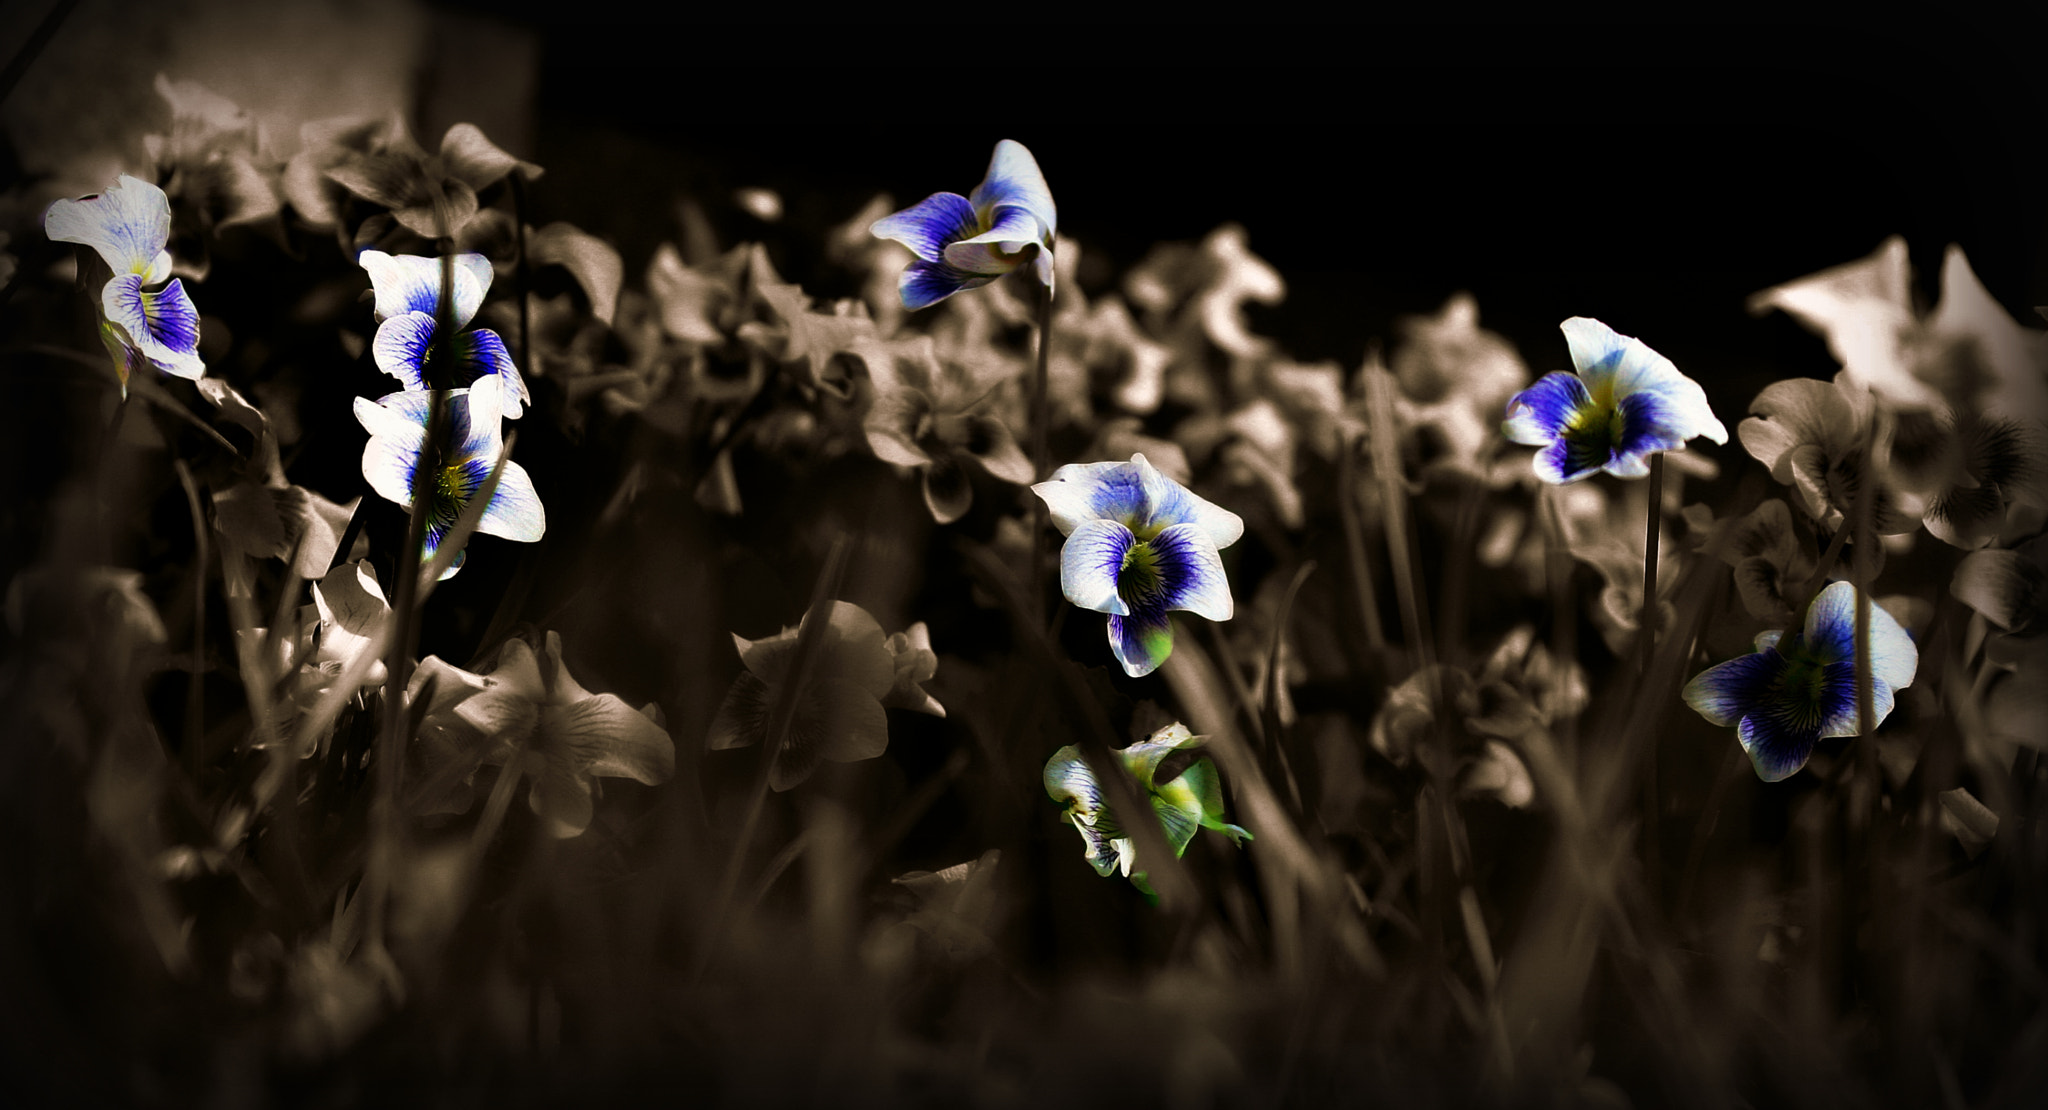 Photograph Pansies by Yazmine Hawkins on 500px